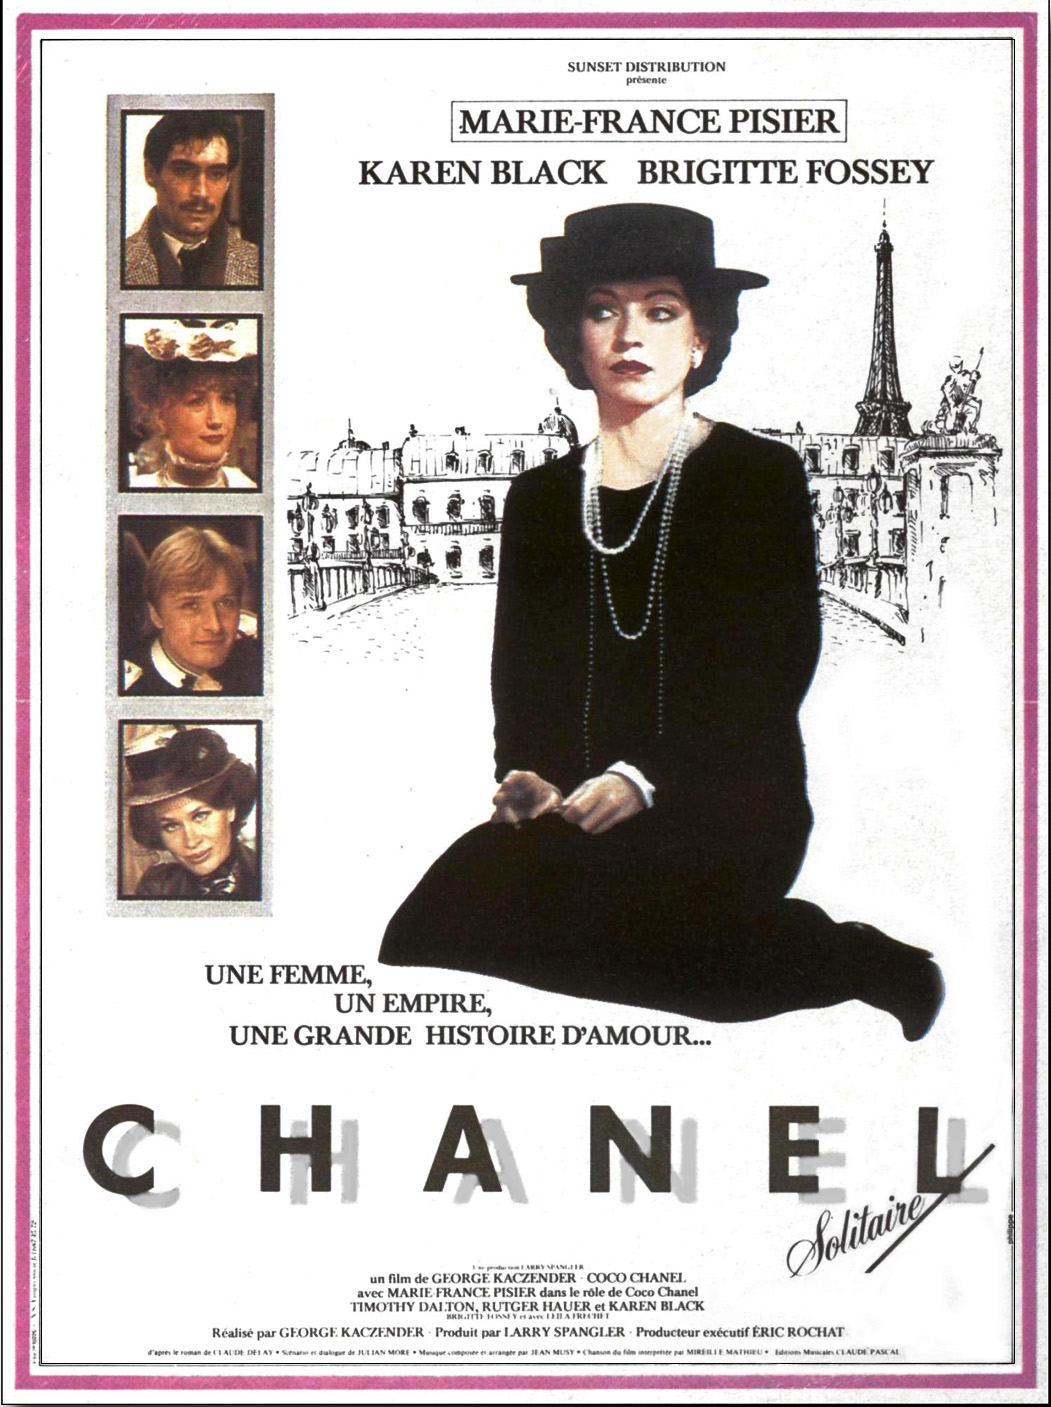 Chanel Solitaire (1982)